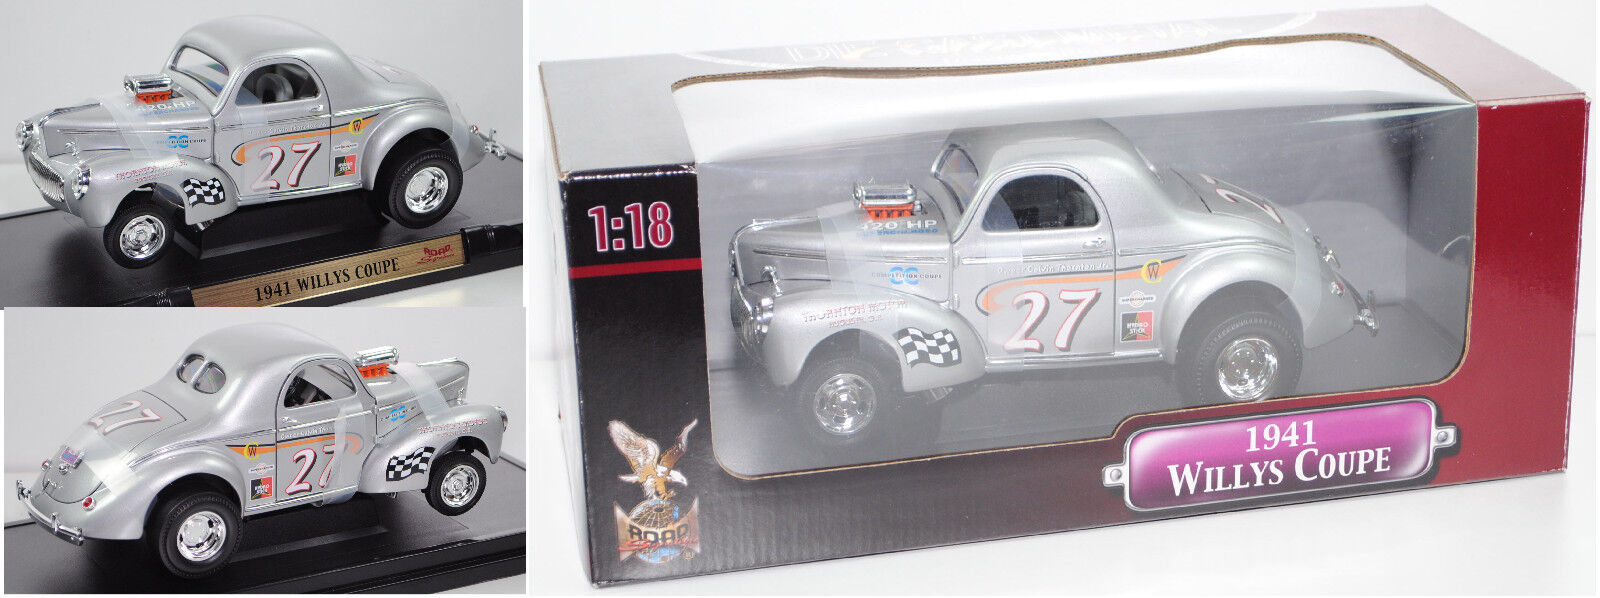 YATMING 5510863 Willys americar coupé (type Hot Rod), argent, 1 18